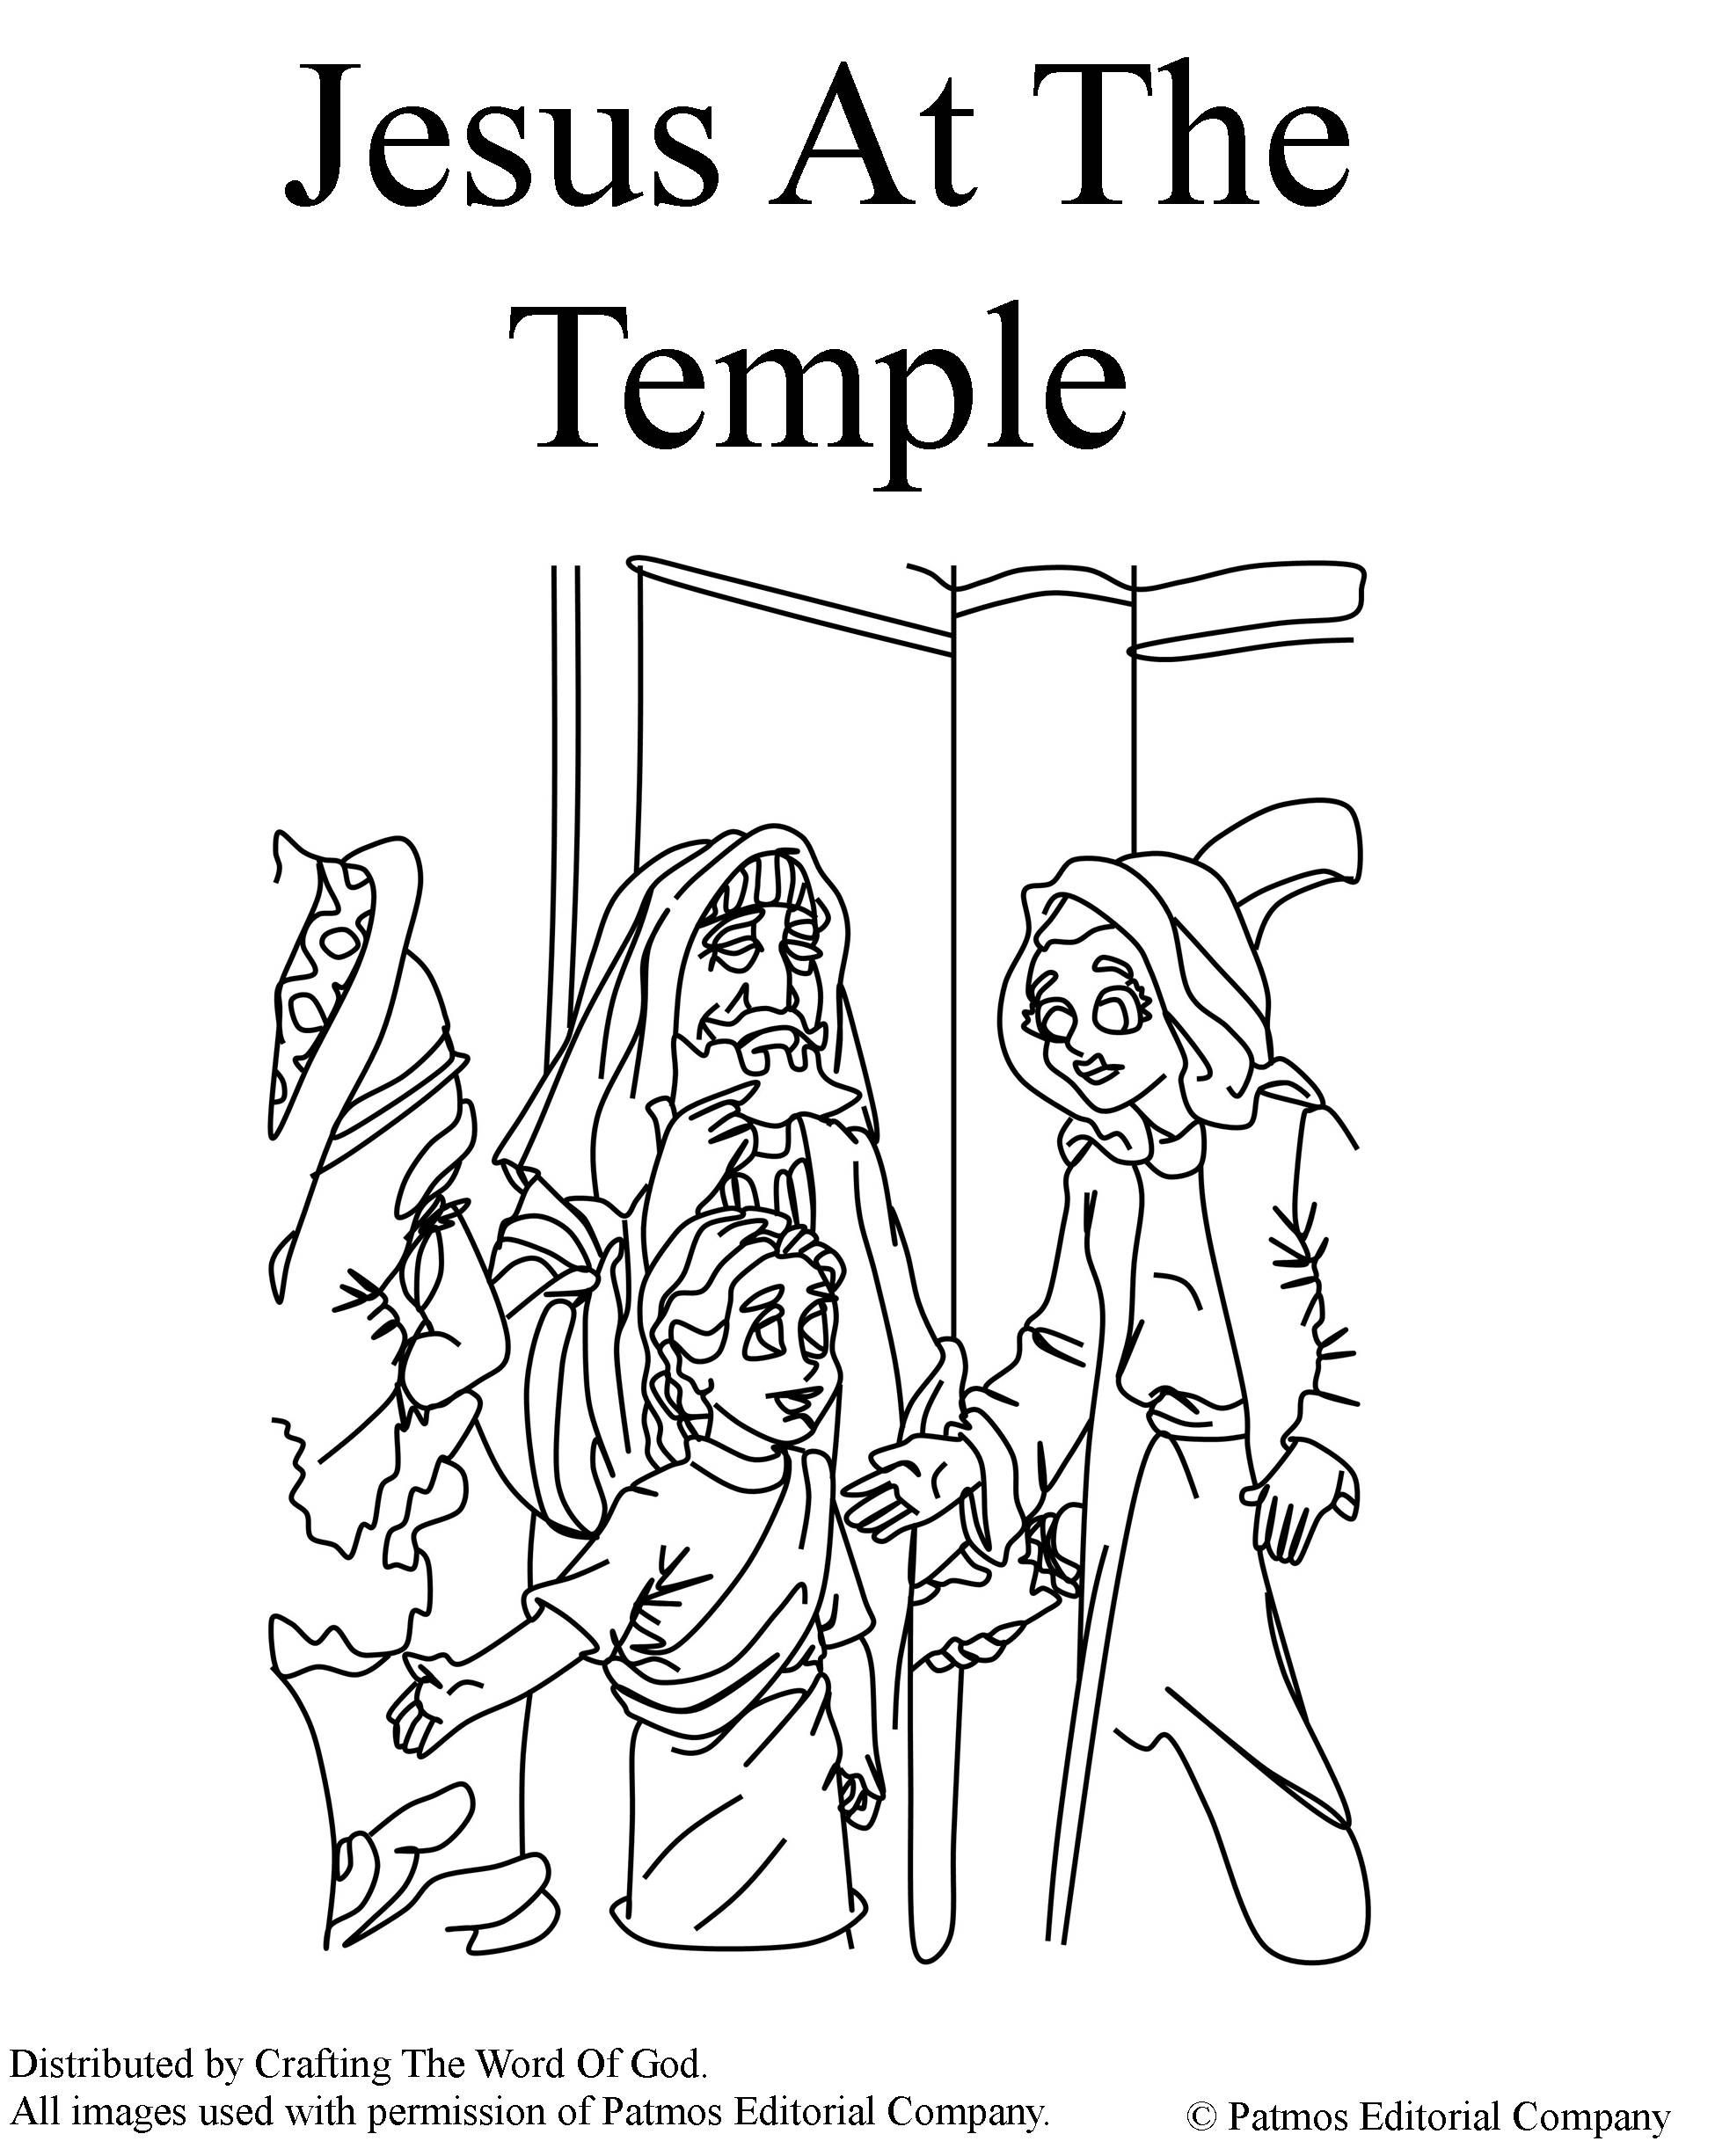 Jesus At The Temple Coloring Page Jesus Coloring Pages Coloring Pages For Kids Bible Coloring Pages